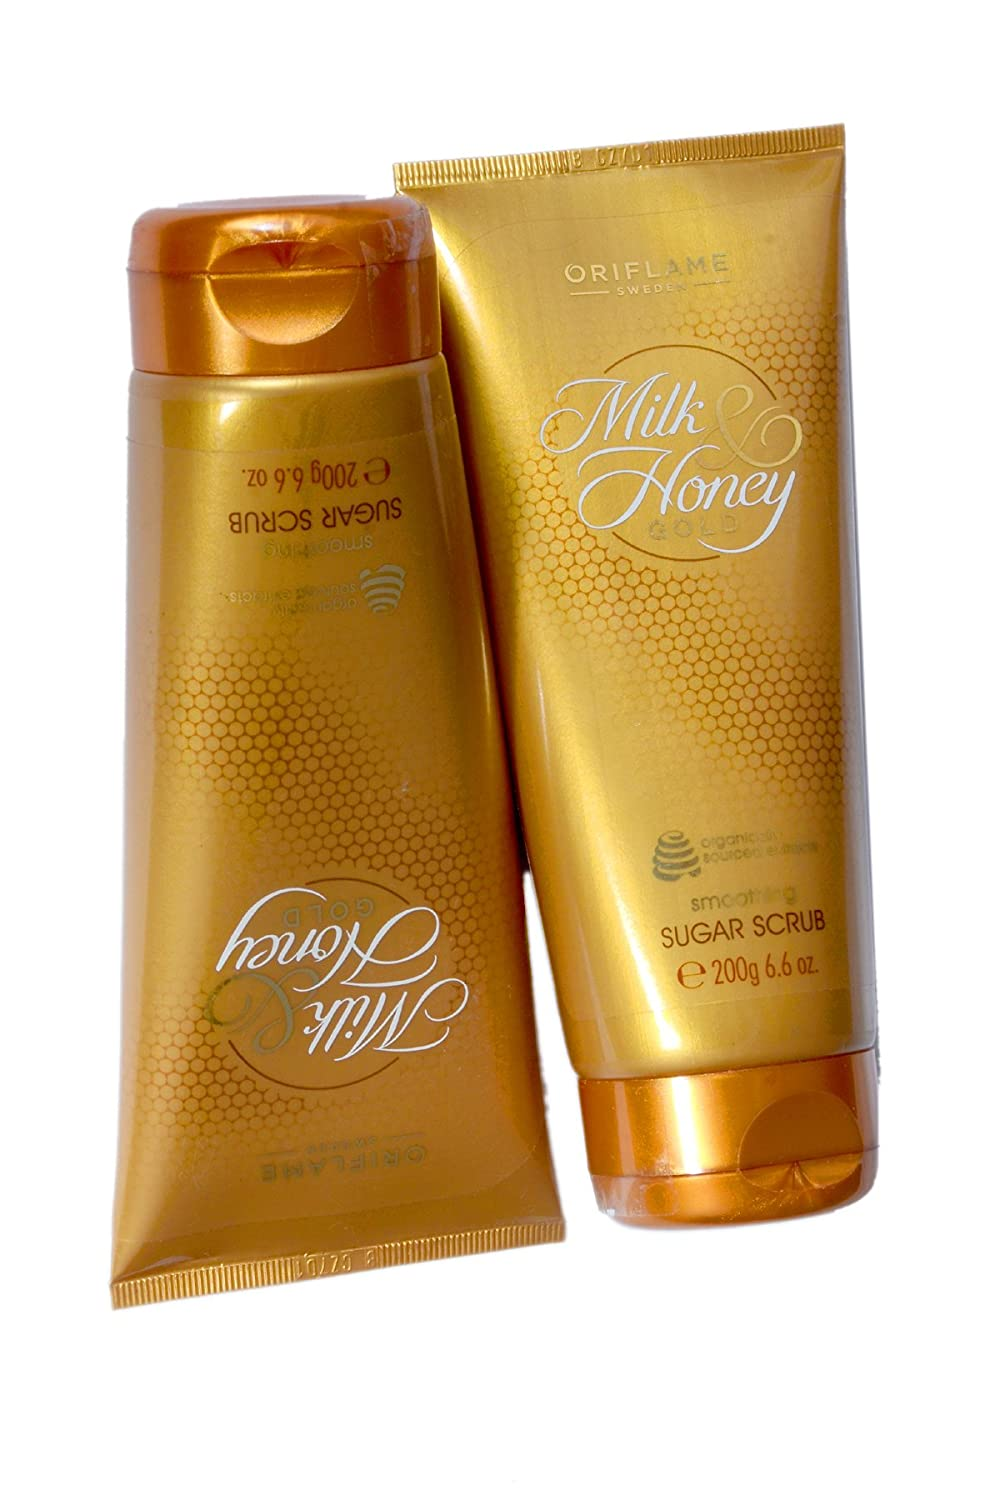 Oriflame Milk & Honey Gold Smoothing Suger Scrub 200g Each Combo of 20